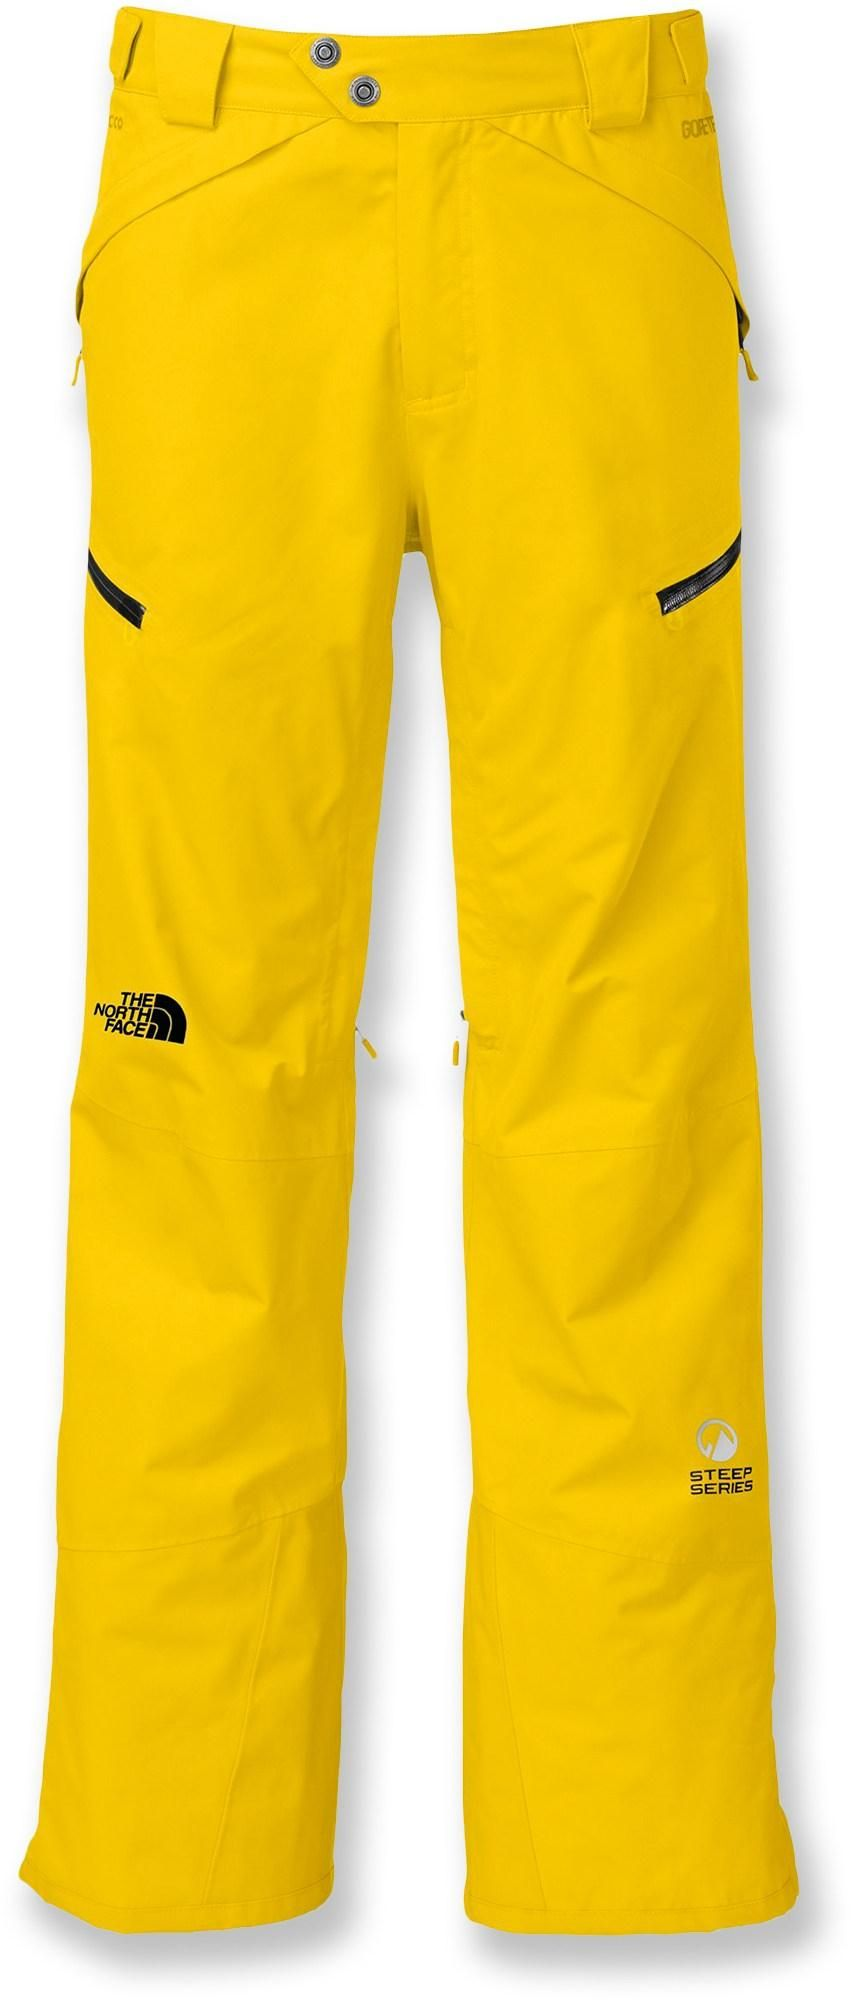 The Nfz Insulated Pants By The North Face Offer Gore Tex Waterproof Protection And Sturdy Construction Reigifts Mens Pants North Face Mens Pants